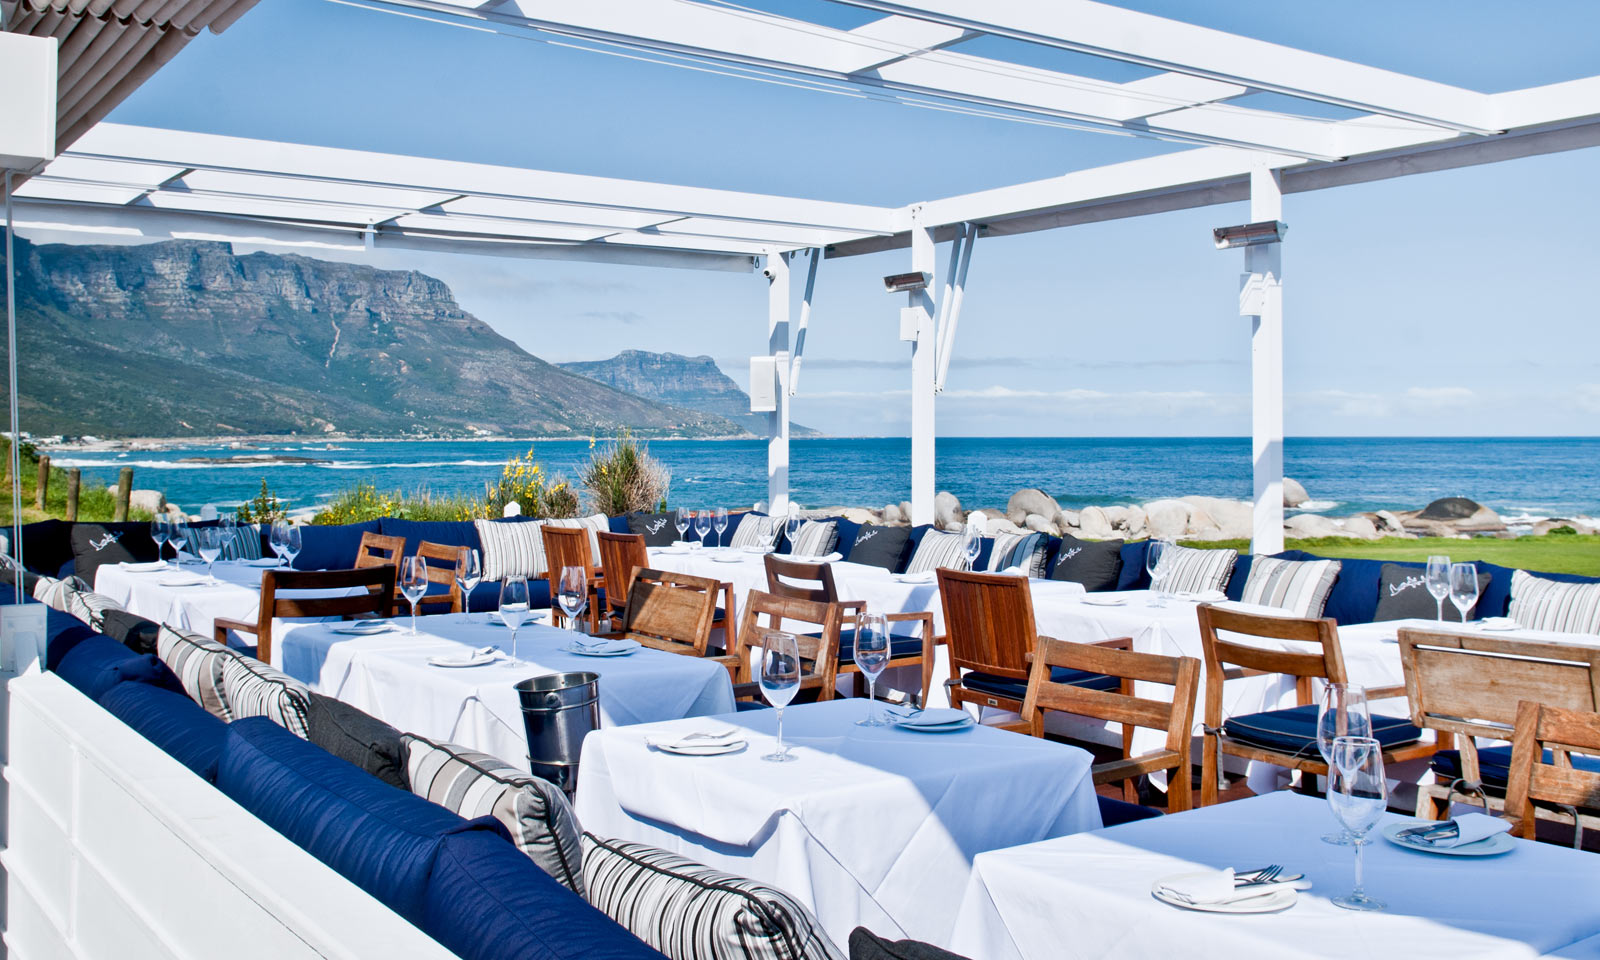 lunch-with-a-view-bungalow-cape-town-things-to-do